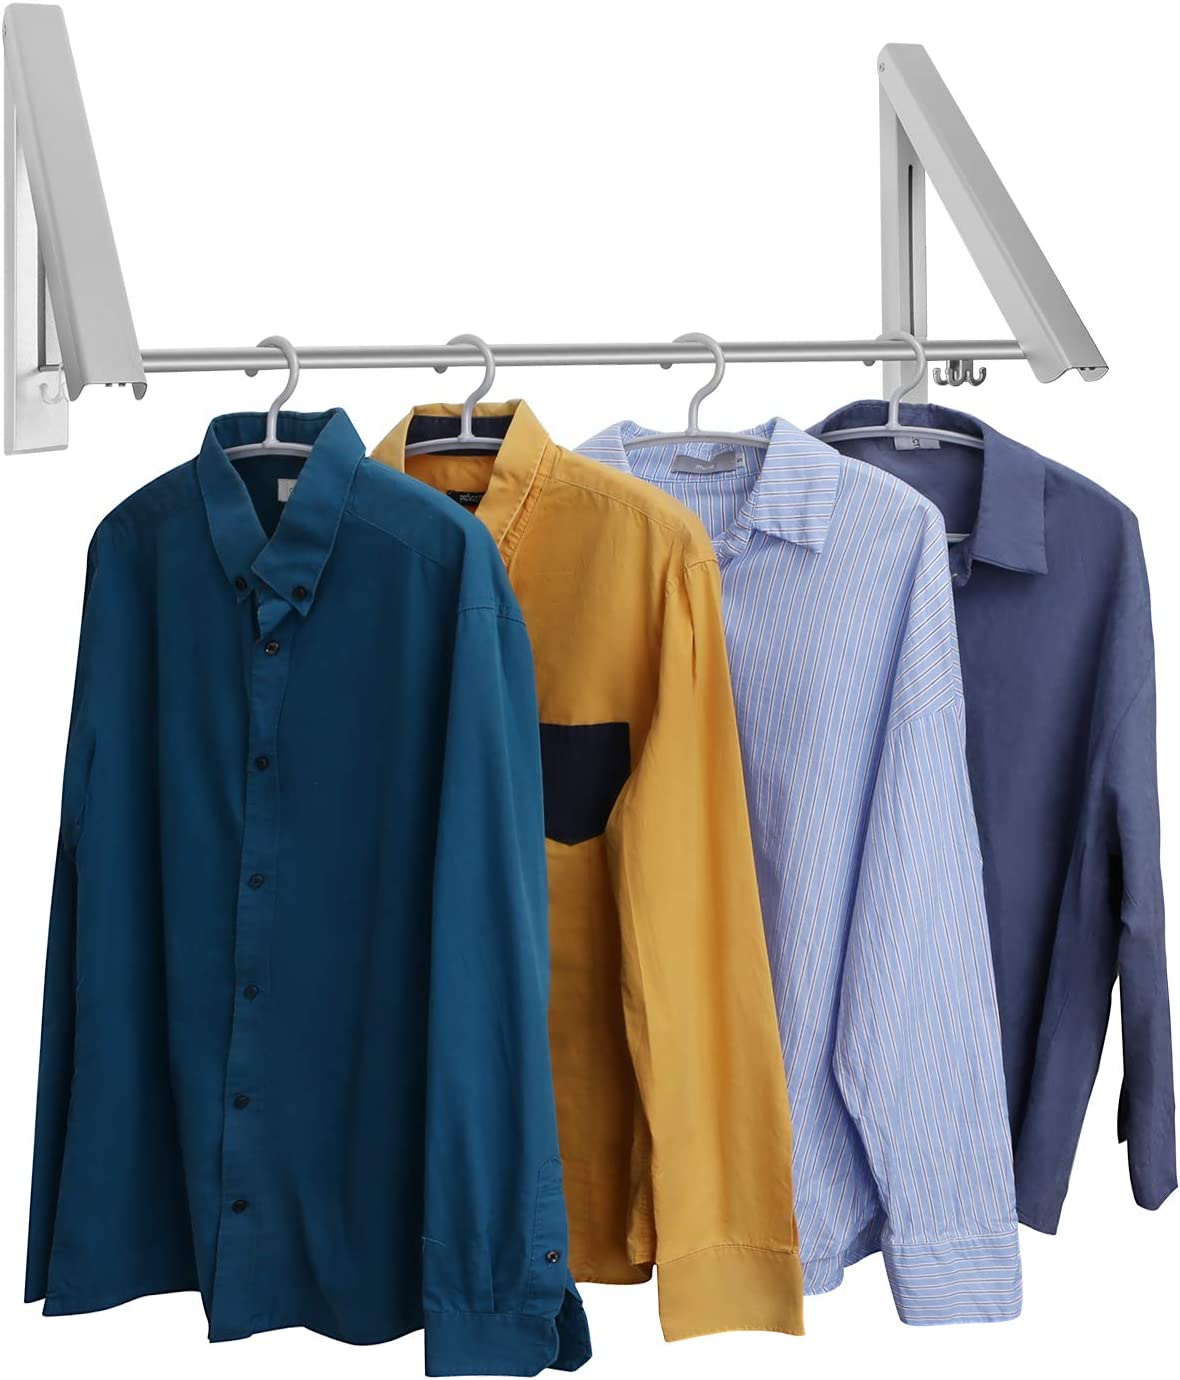 LECDDL Retractable Clothes Racks - Laundry Hangers Wall Mount - Wall Mounted Folding Clothes Hanger Drying Rack - Waterproof Indoor Outdoor Wall Mounted Clothes Hanger, 2 Racks with Rod